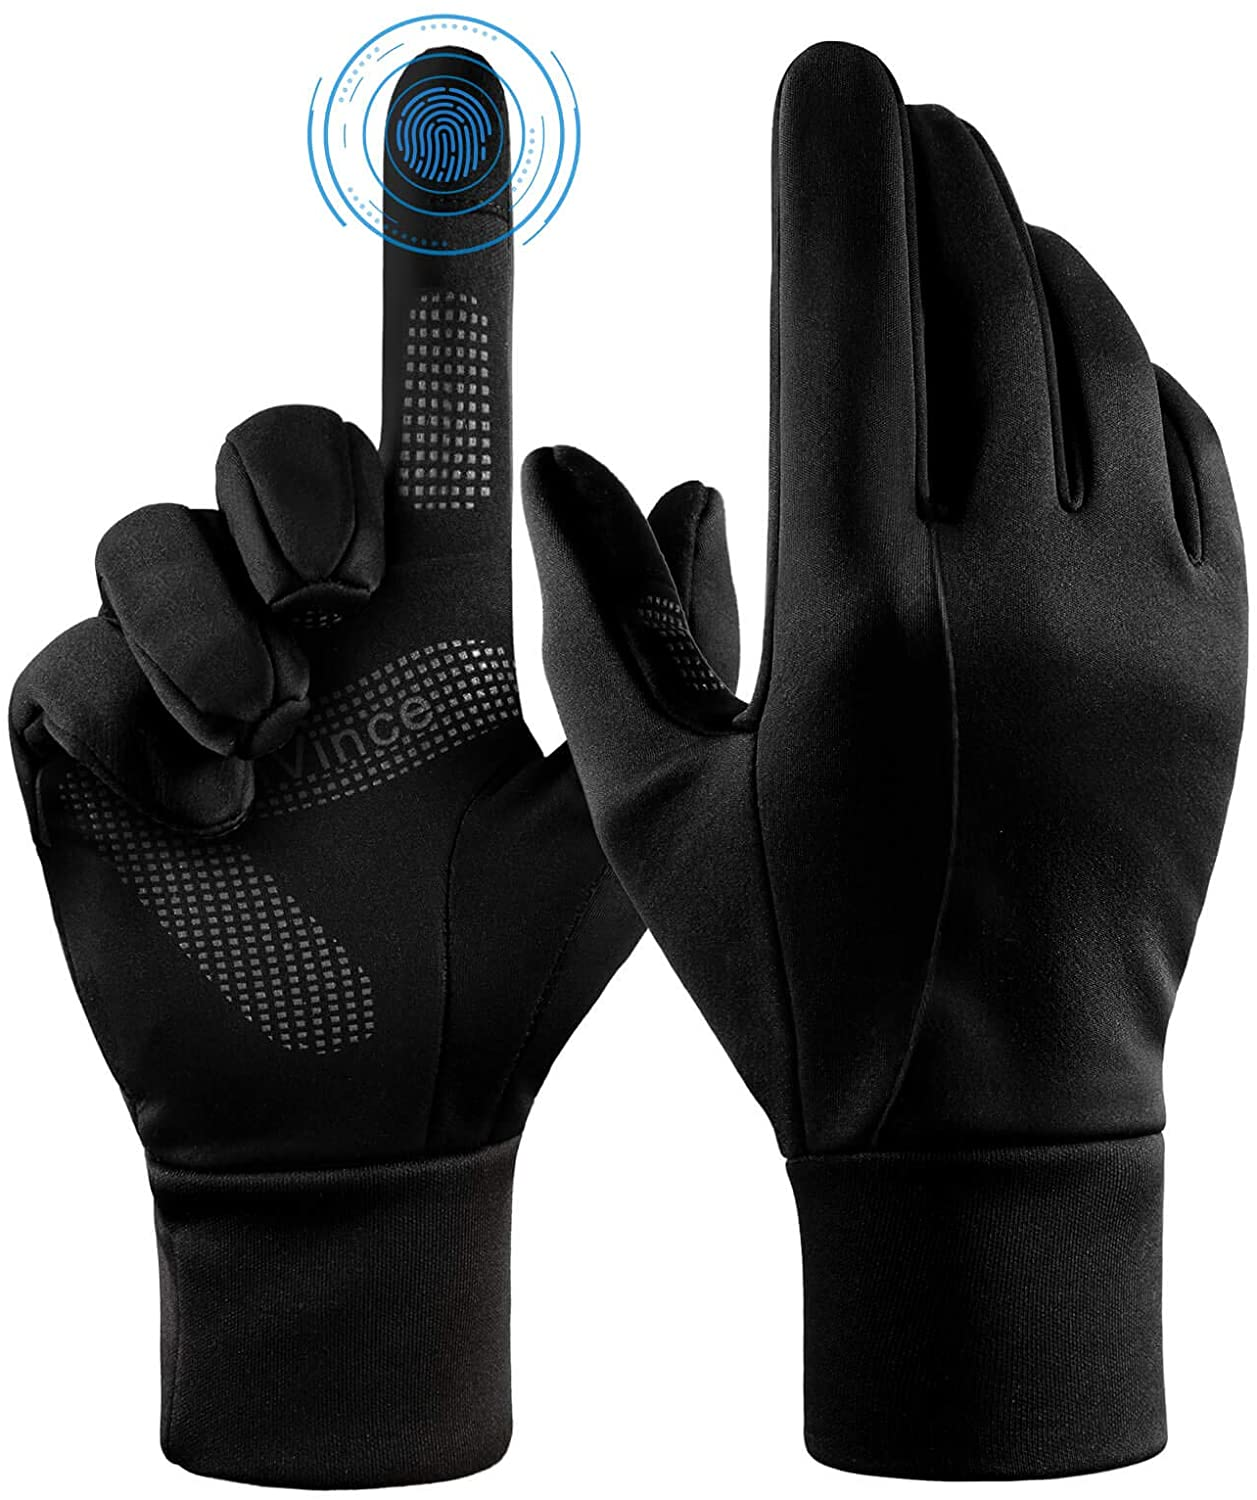 fanvince winter gloves water resistant and windproof